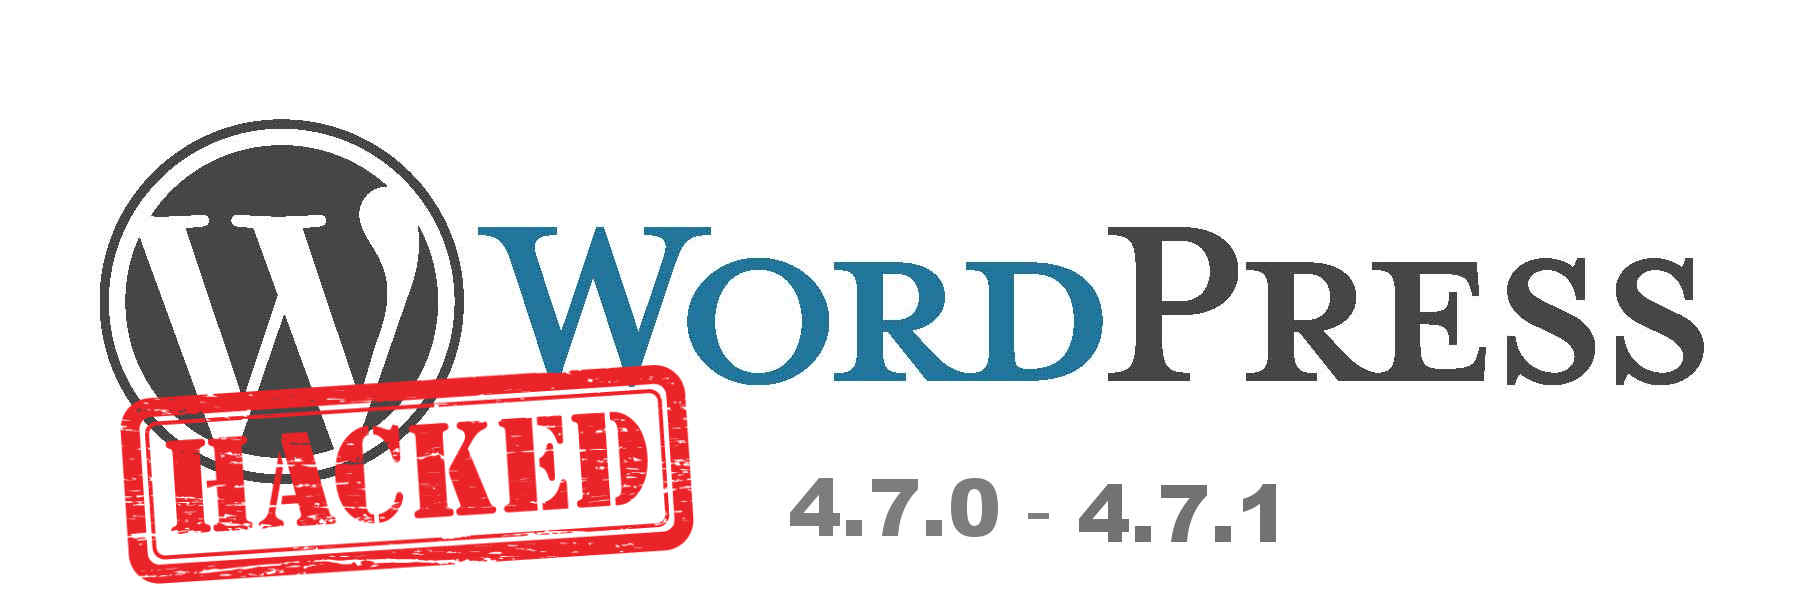 WordPress 4.7.0 y  4.7.1 vulnerable ,  actualiza Ya.